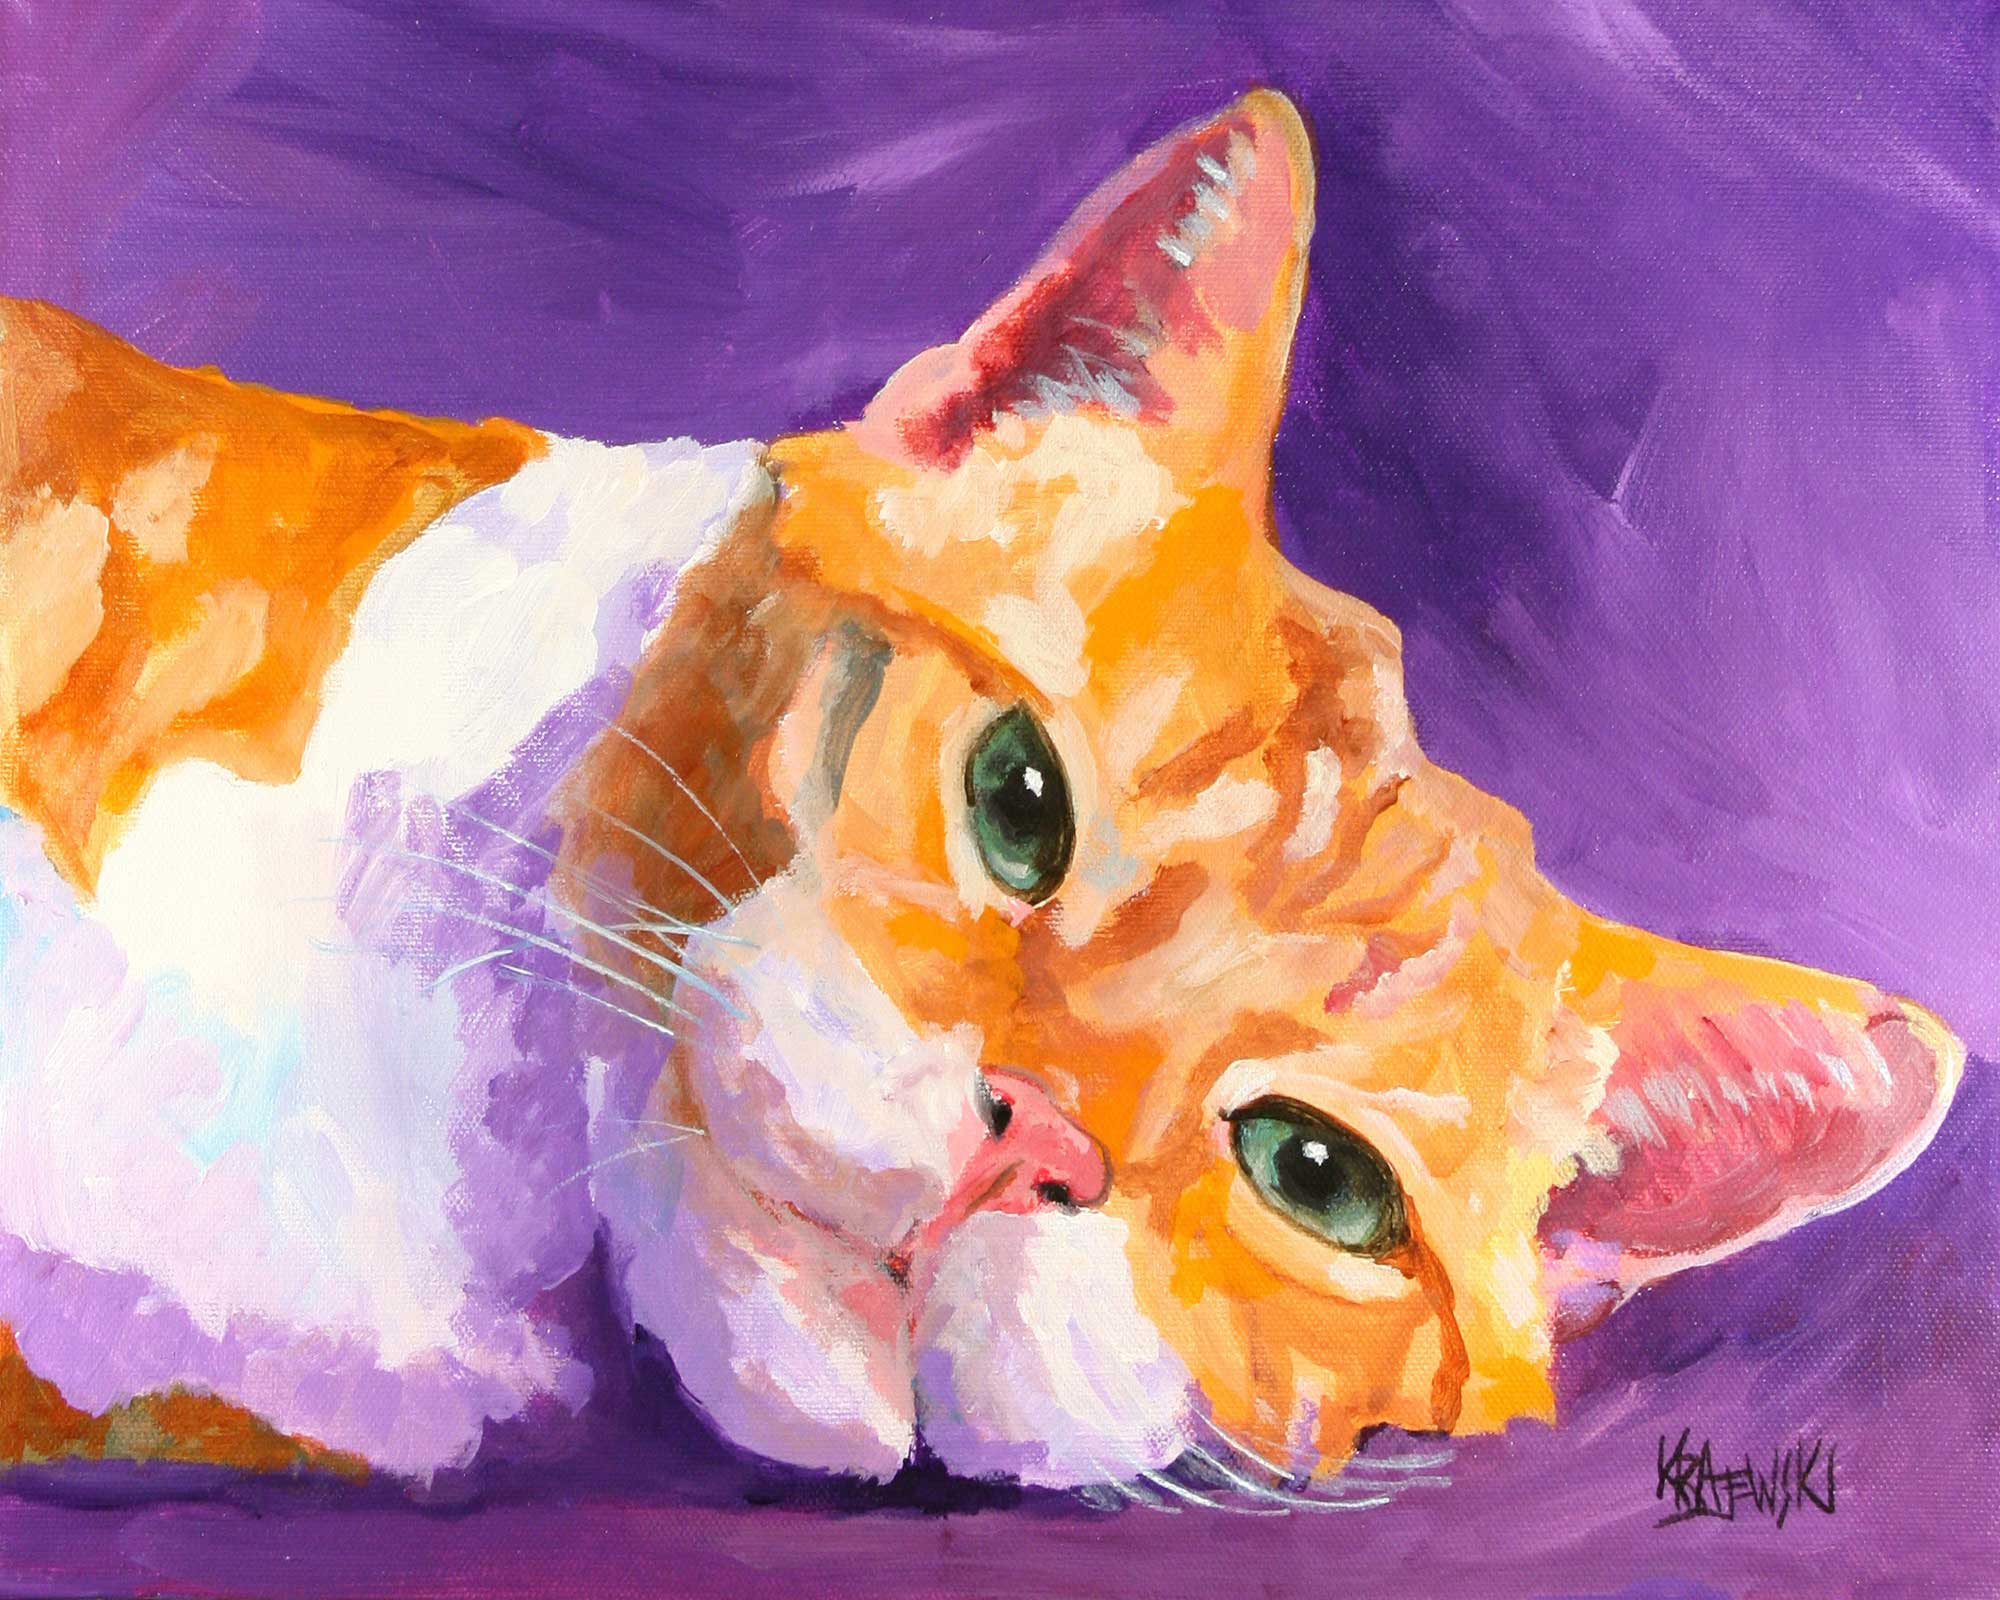 Tabby Cat 092507 - Ron Krajewski Art